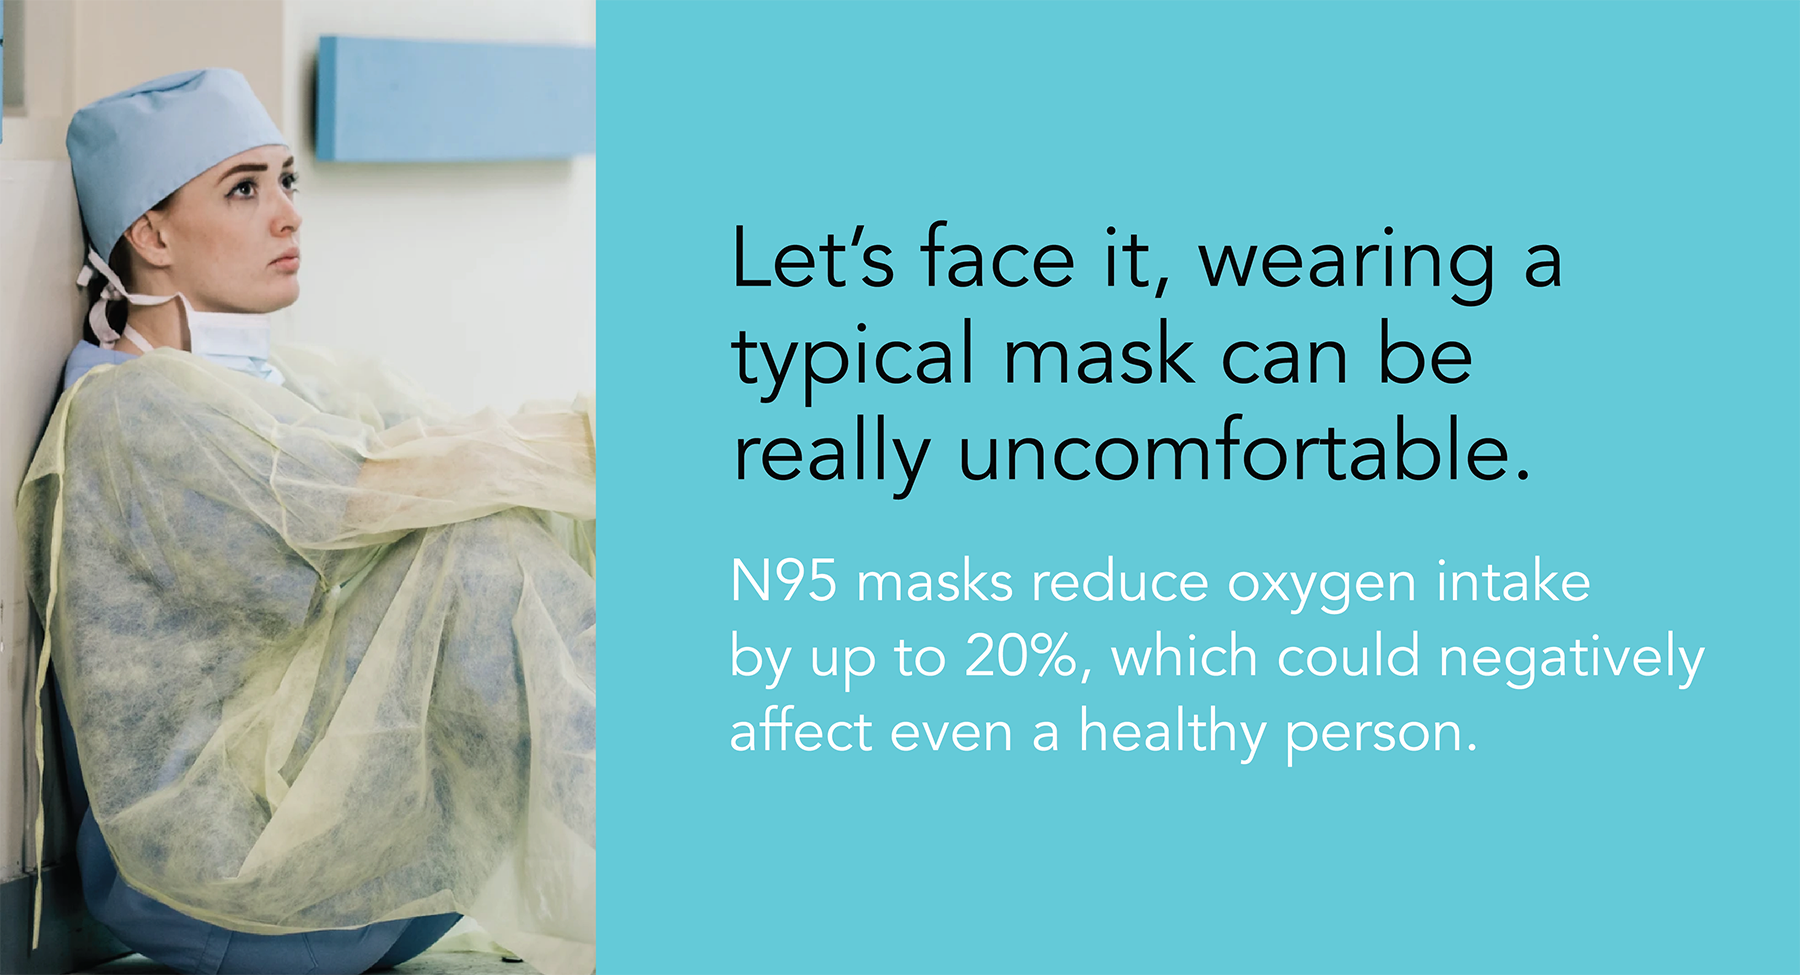 Lets face it, wearing a typical mask can be really uncomfortable. N95 masks reduce oxygen intake by up to 20%, which could negatively affect even a heathy person. Patent Pending Clean Air Technology. N95 KN95 Mask N99 reusable washable air purifying fan